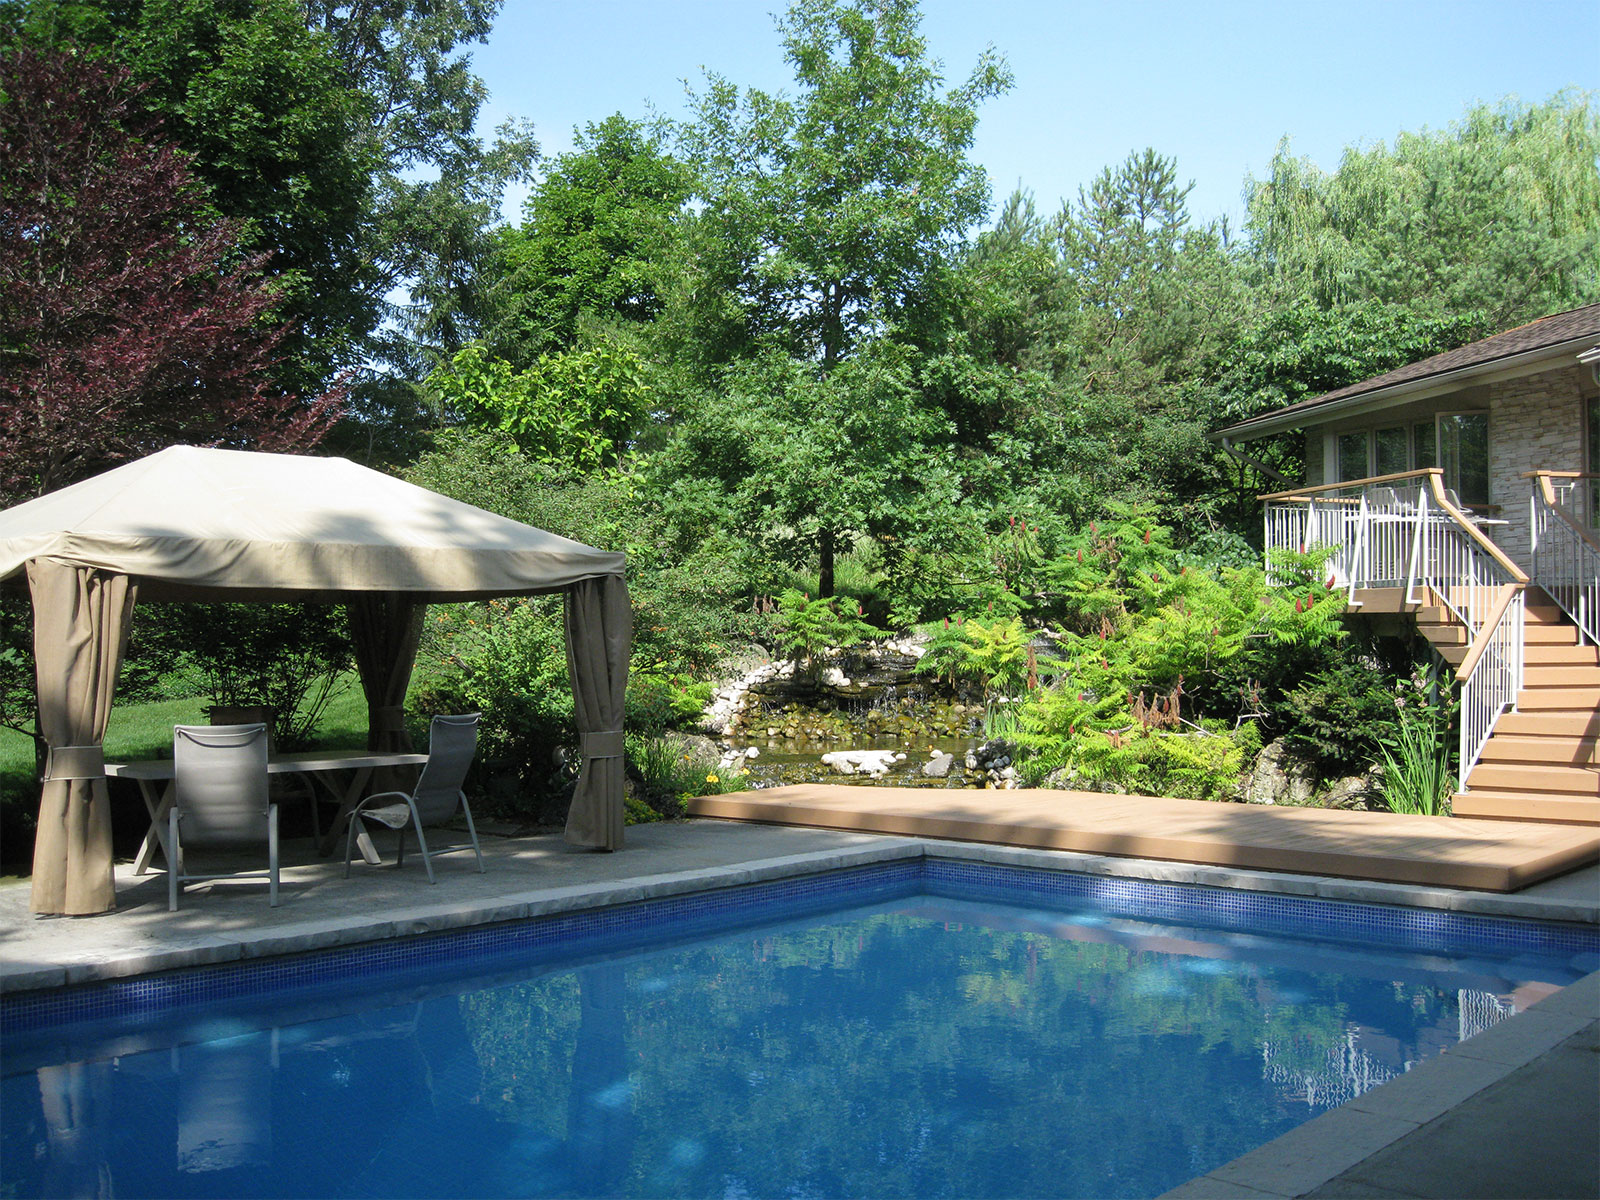 Pool - Deck - Water feature